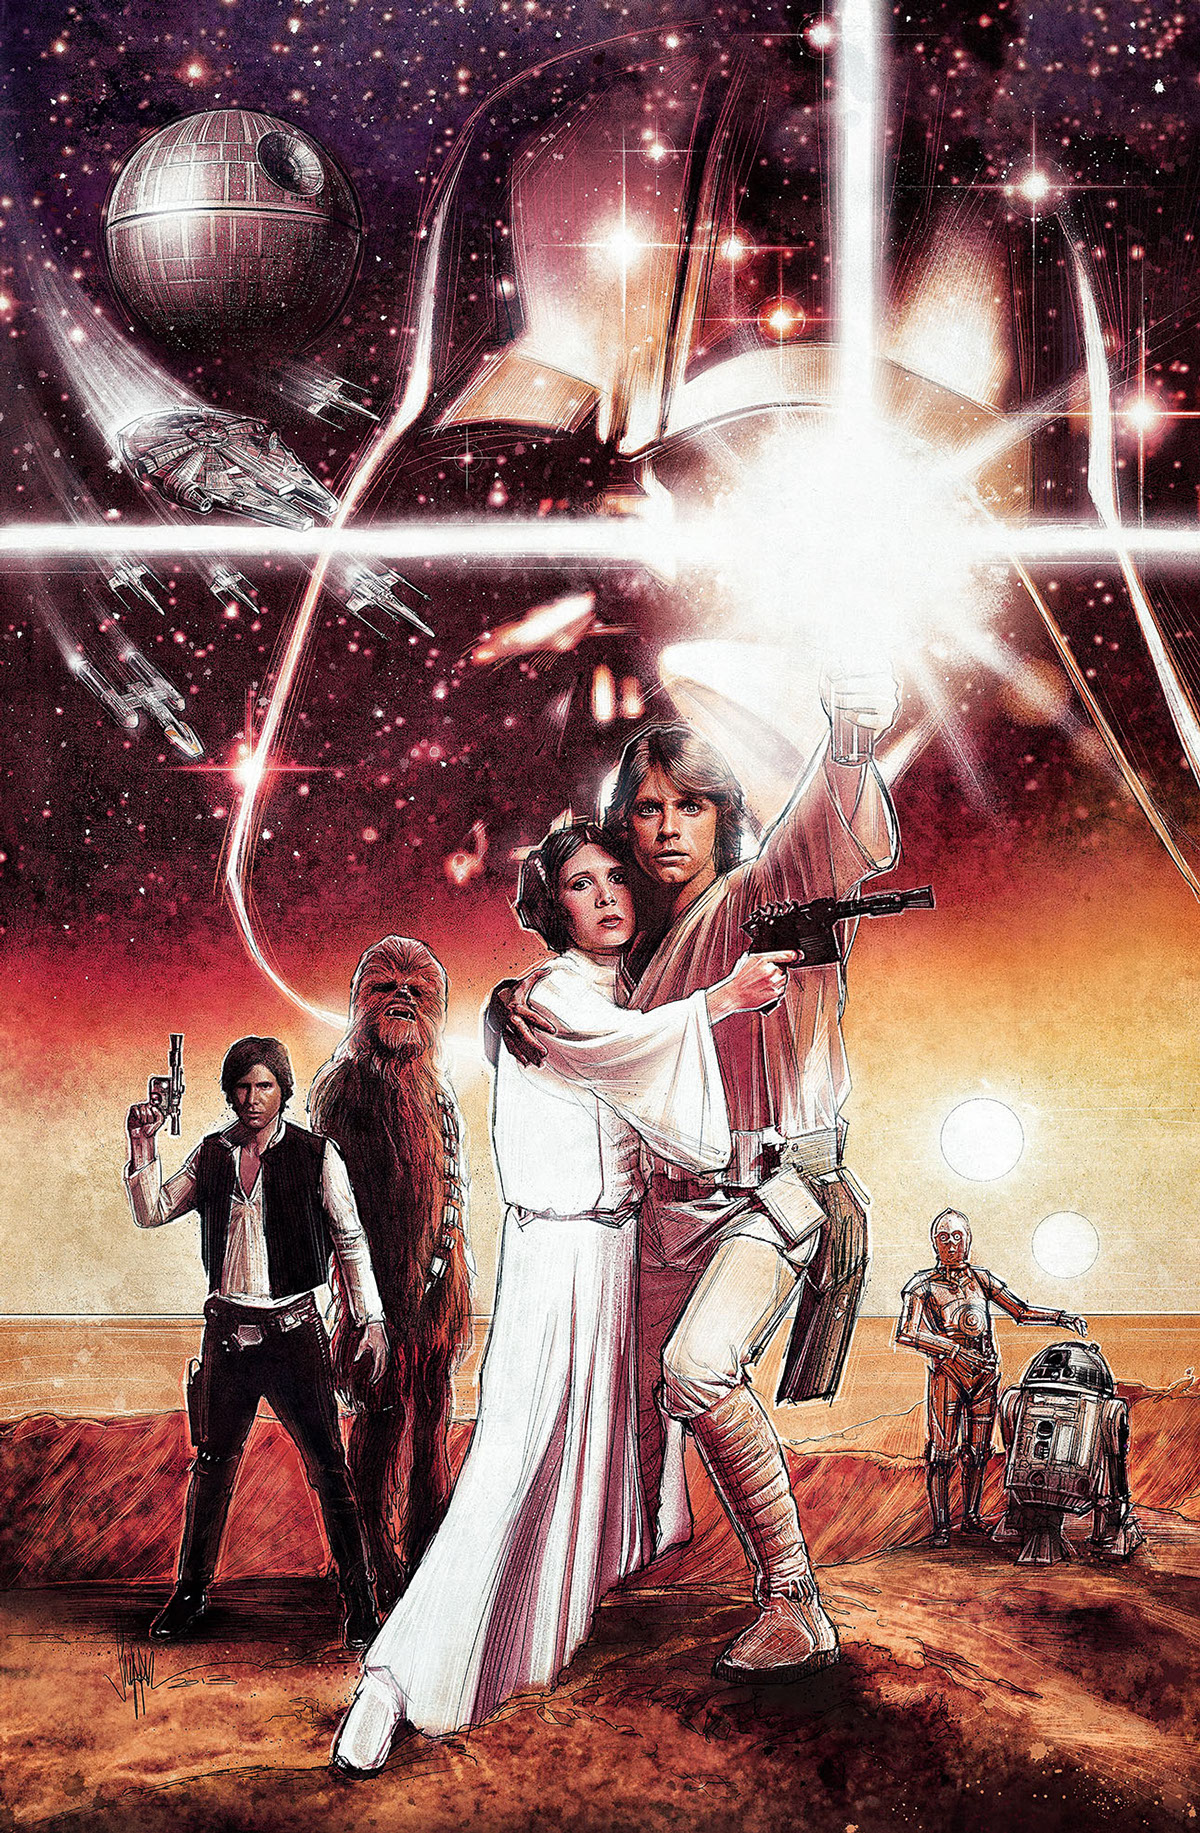 Star Wars - A New Hope by Paul Shipper